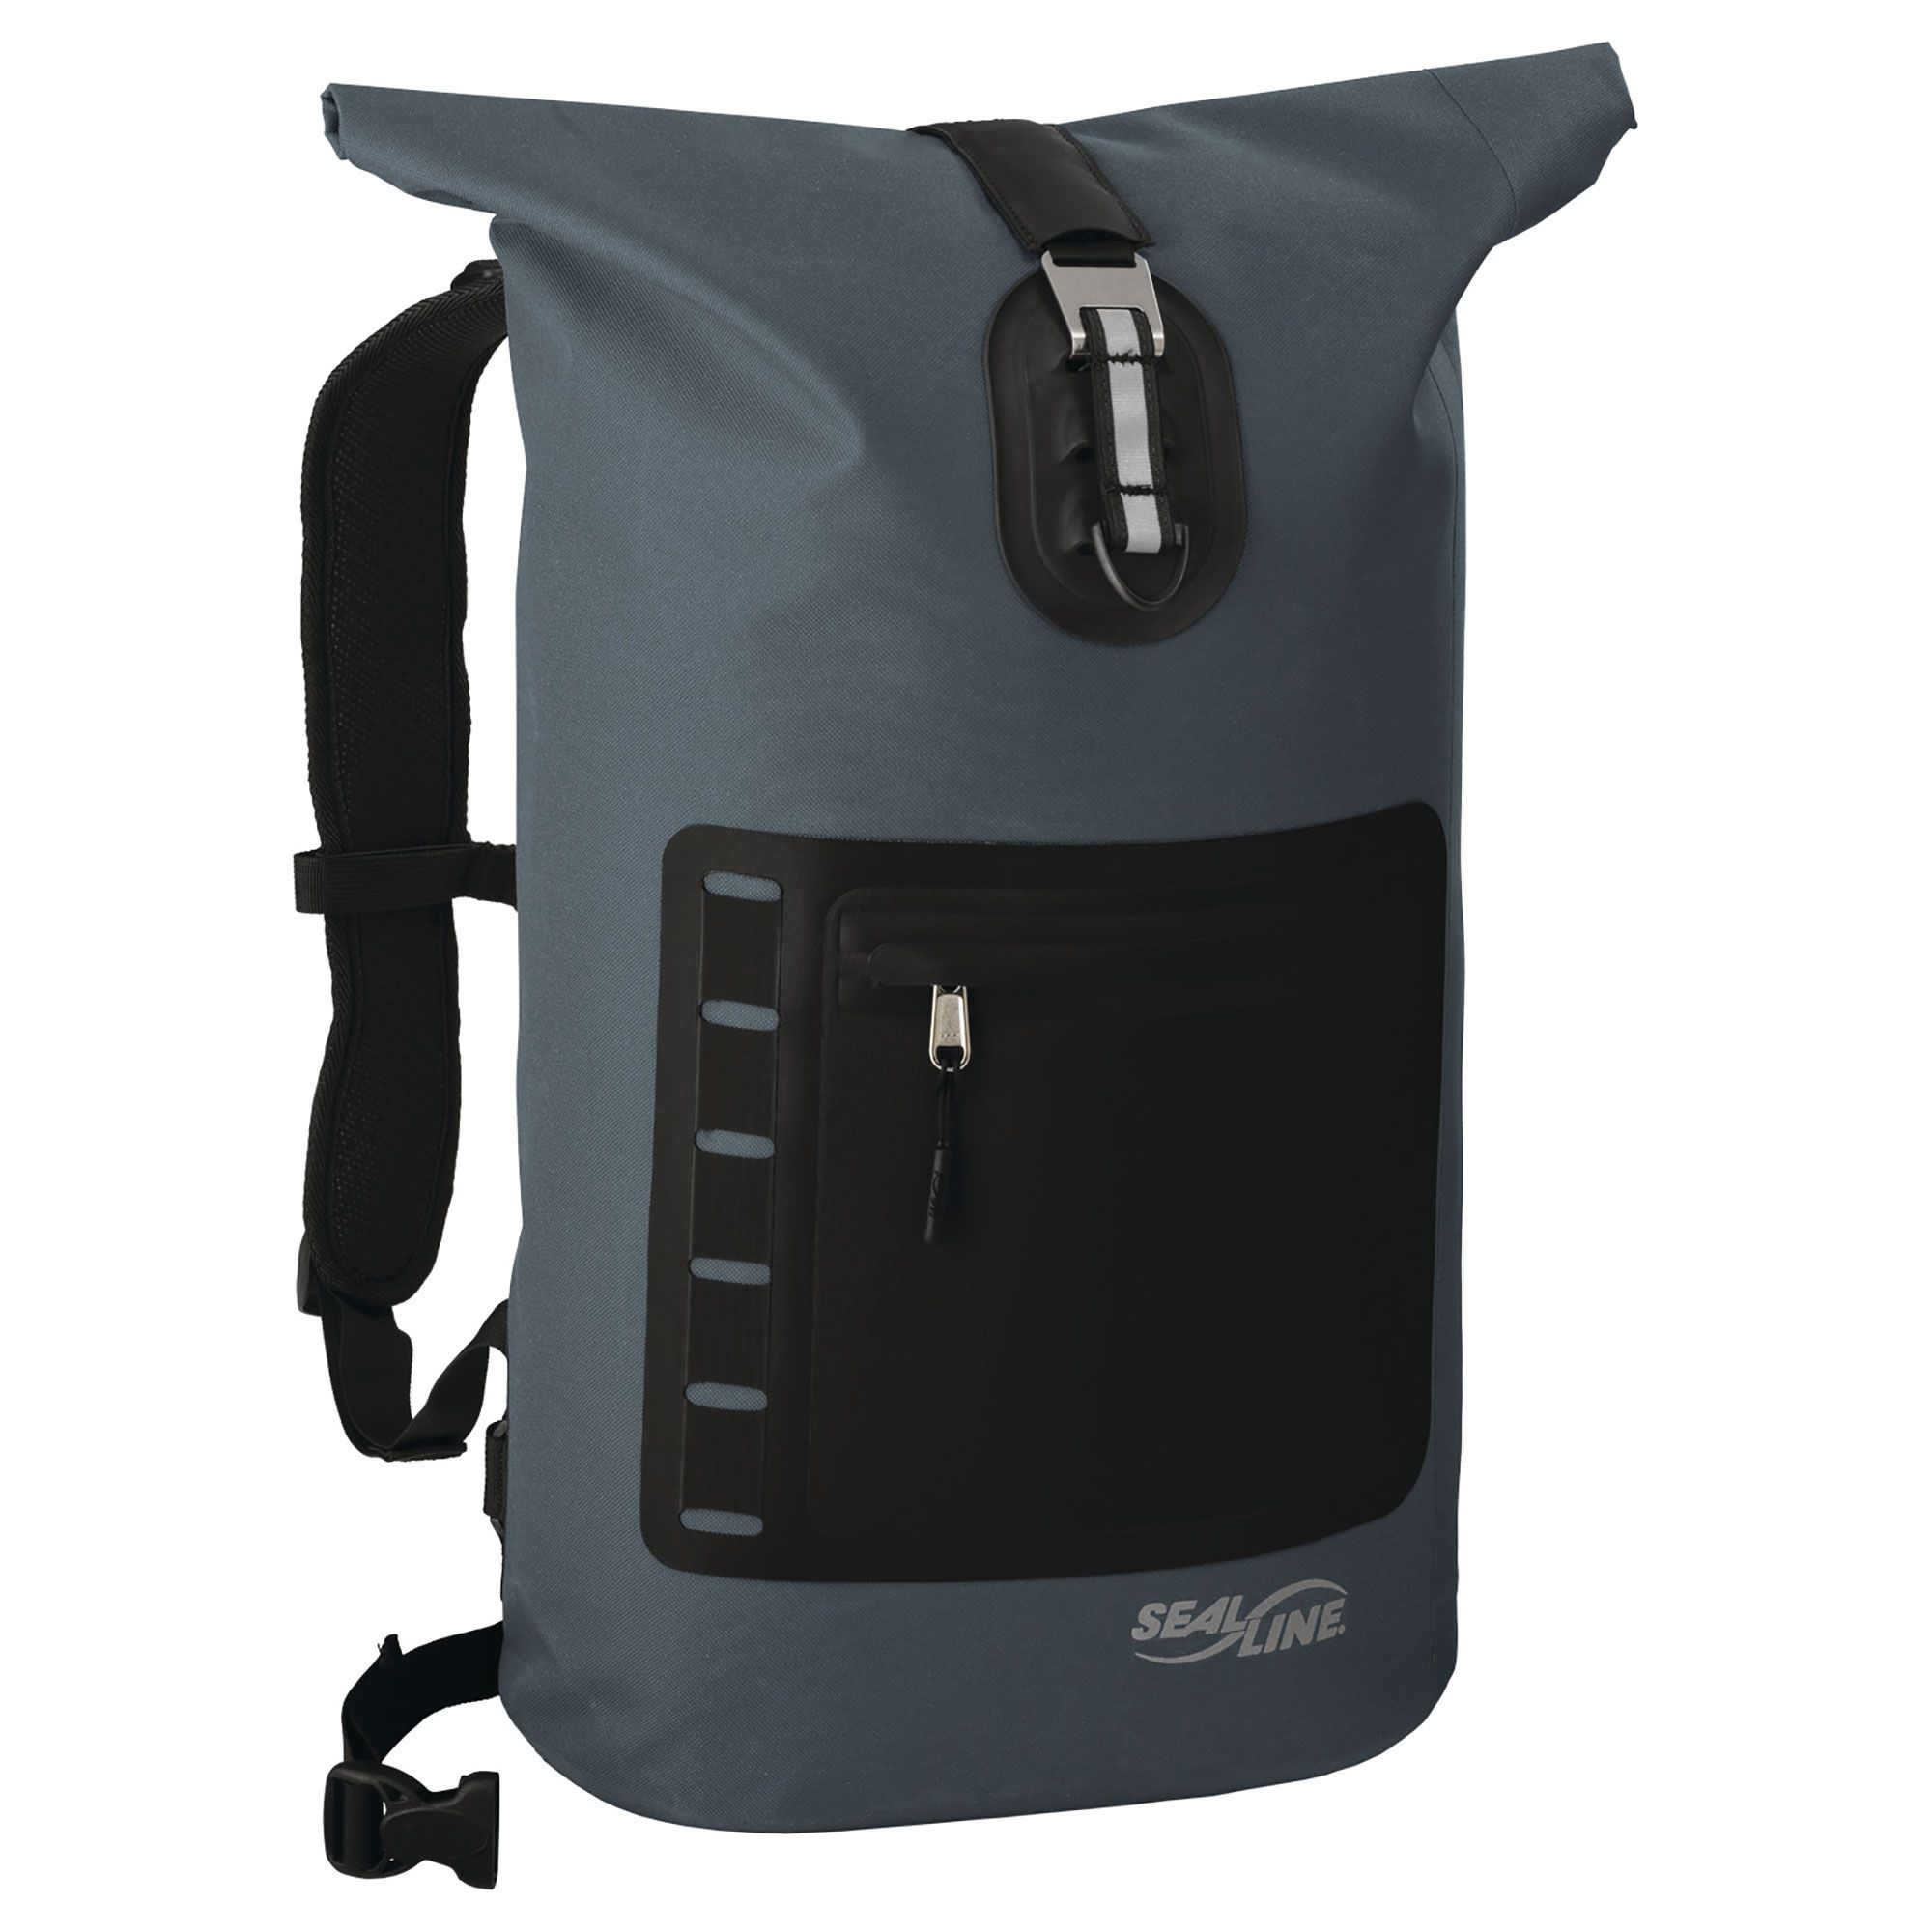 Waterproof Commuter Backpack 2nwPVMm9